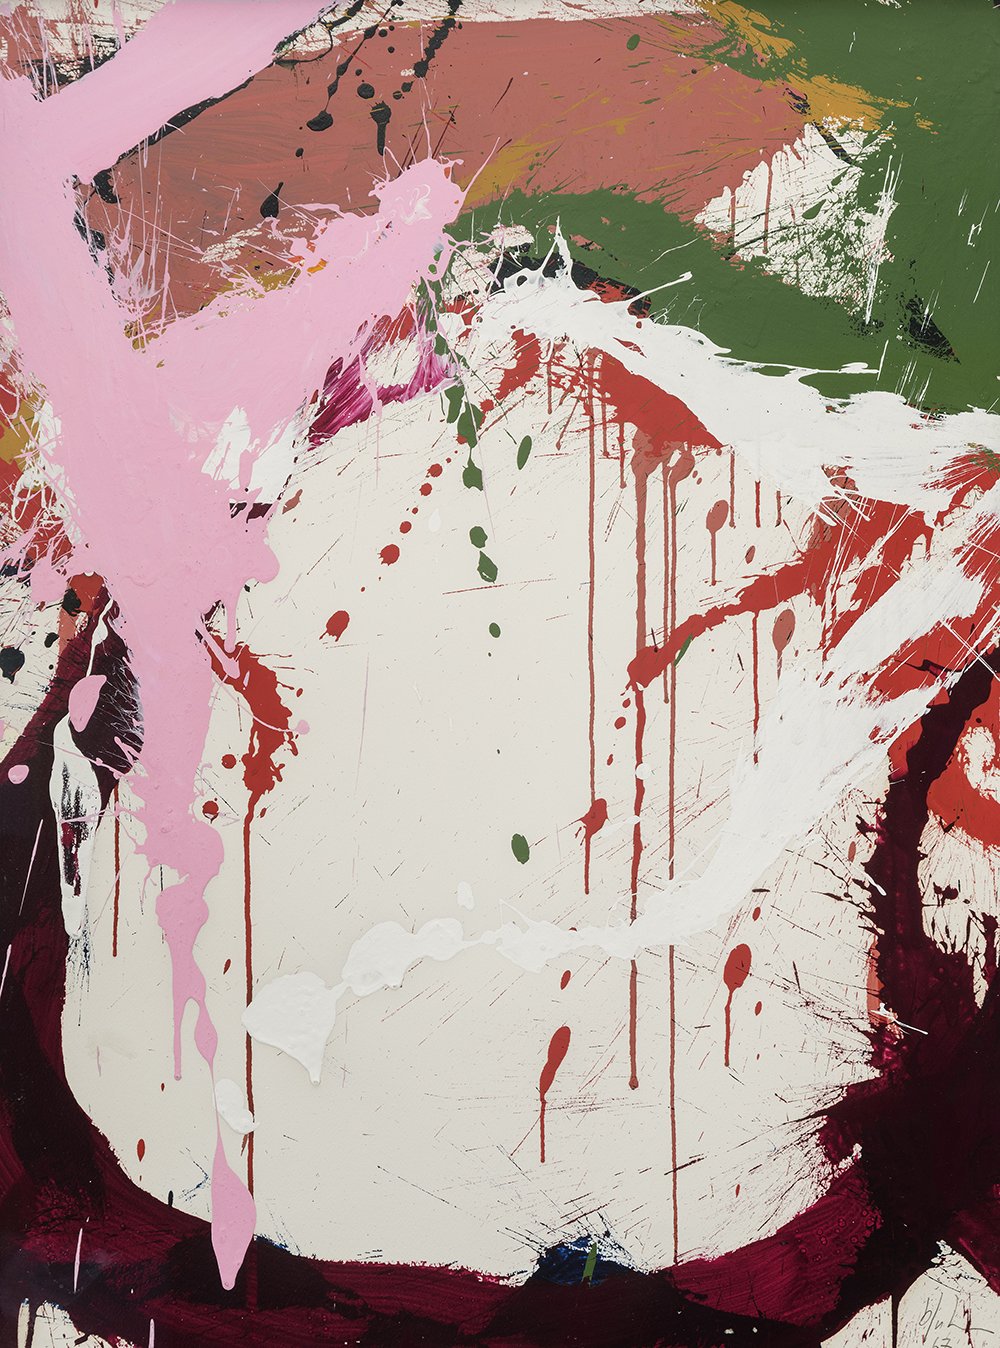 Untitled,   Acrylic on paper, 1967, 29 7/8 x 22 3/8 inches